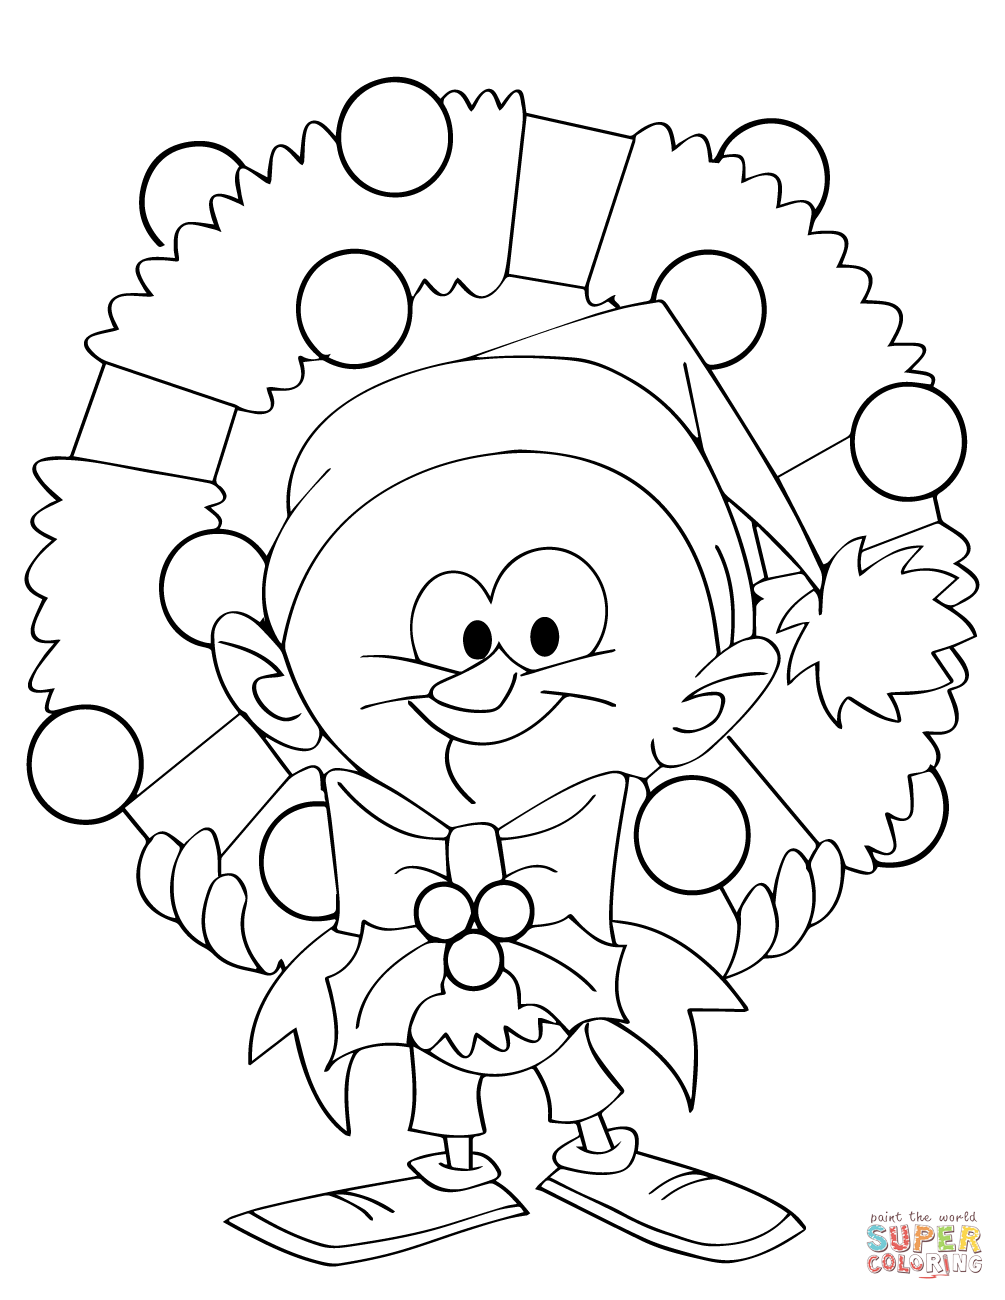 Christmas Wreath Coloring Pages To Print With Page Free Printable In Napisy Me